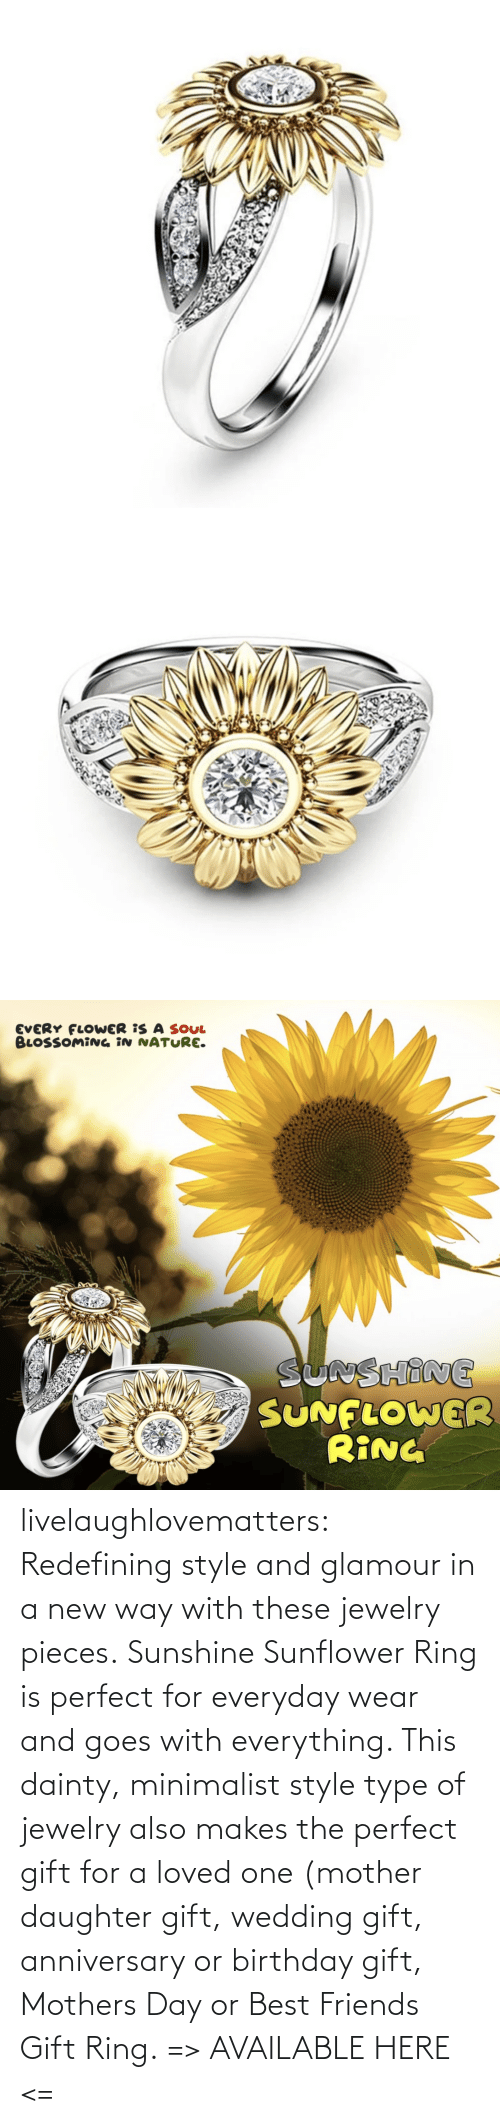 daughter: livelaughlovematters: Redefining style and glamour in a new way with these jewelry pieces. Sunshine Sunflower Ring is perfect for everyday wear and goes with everything. This dainty, minimalist style type of jewelry also makes the perfect gift for a loved one (mother daughter gift, wedding gift, anniversary or birthday gift, Mothers Day or Best Friends Gift Ring. => AVAILABLE HERE <=